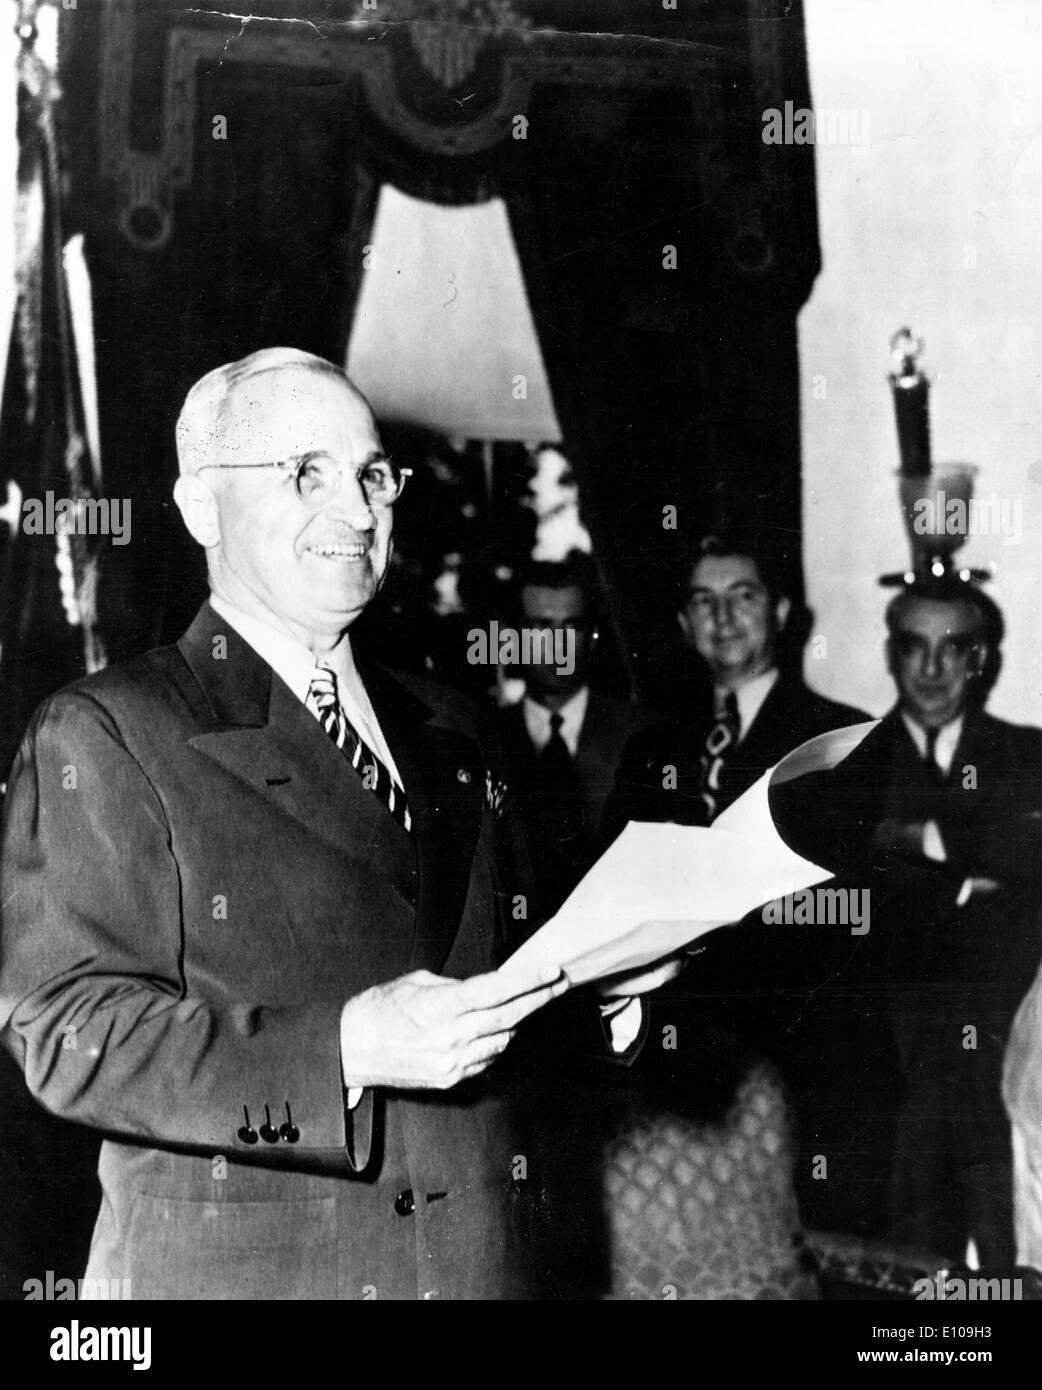 President Harry S. Truman leads a meeting - Stock Image